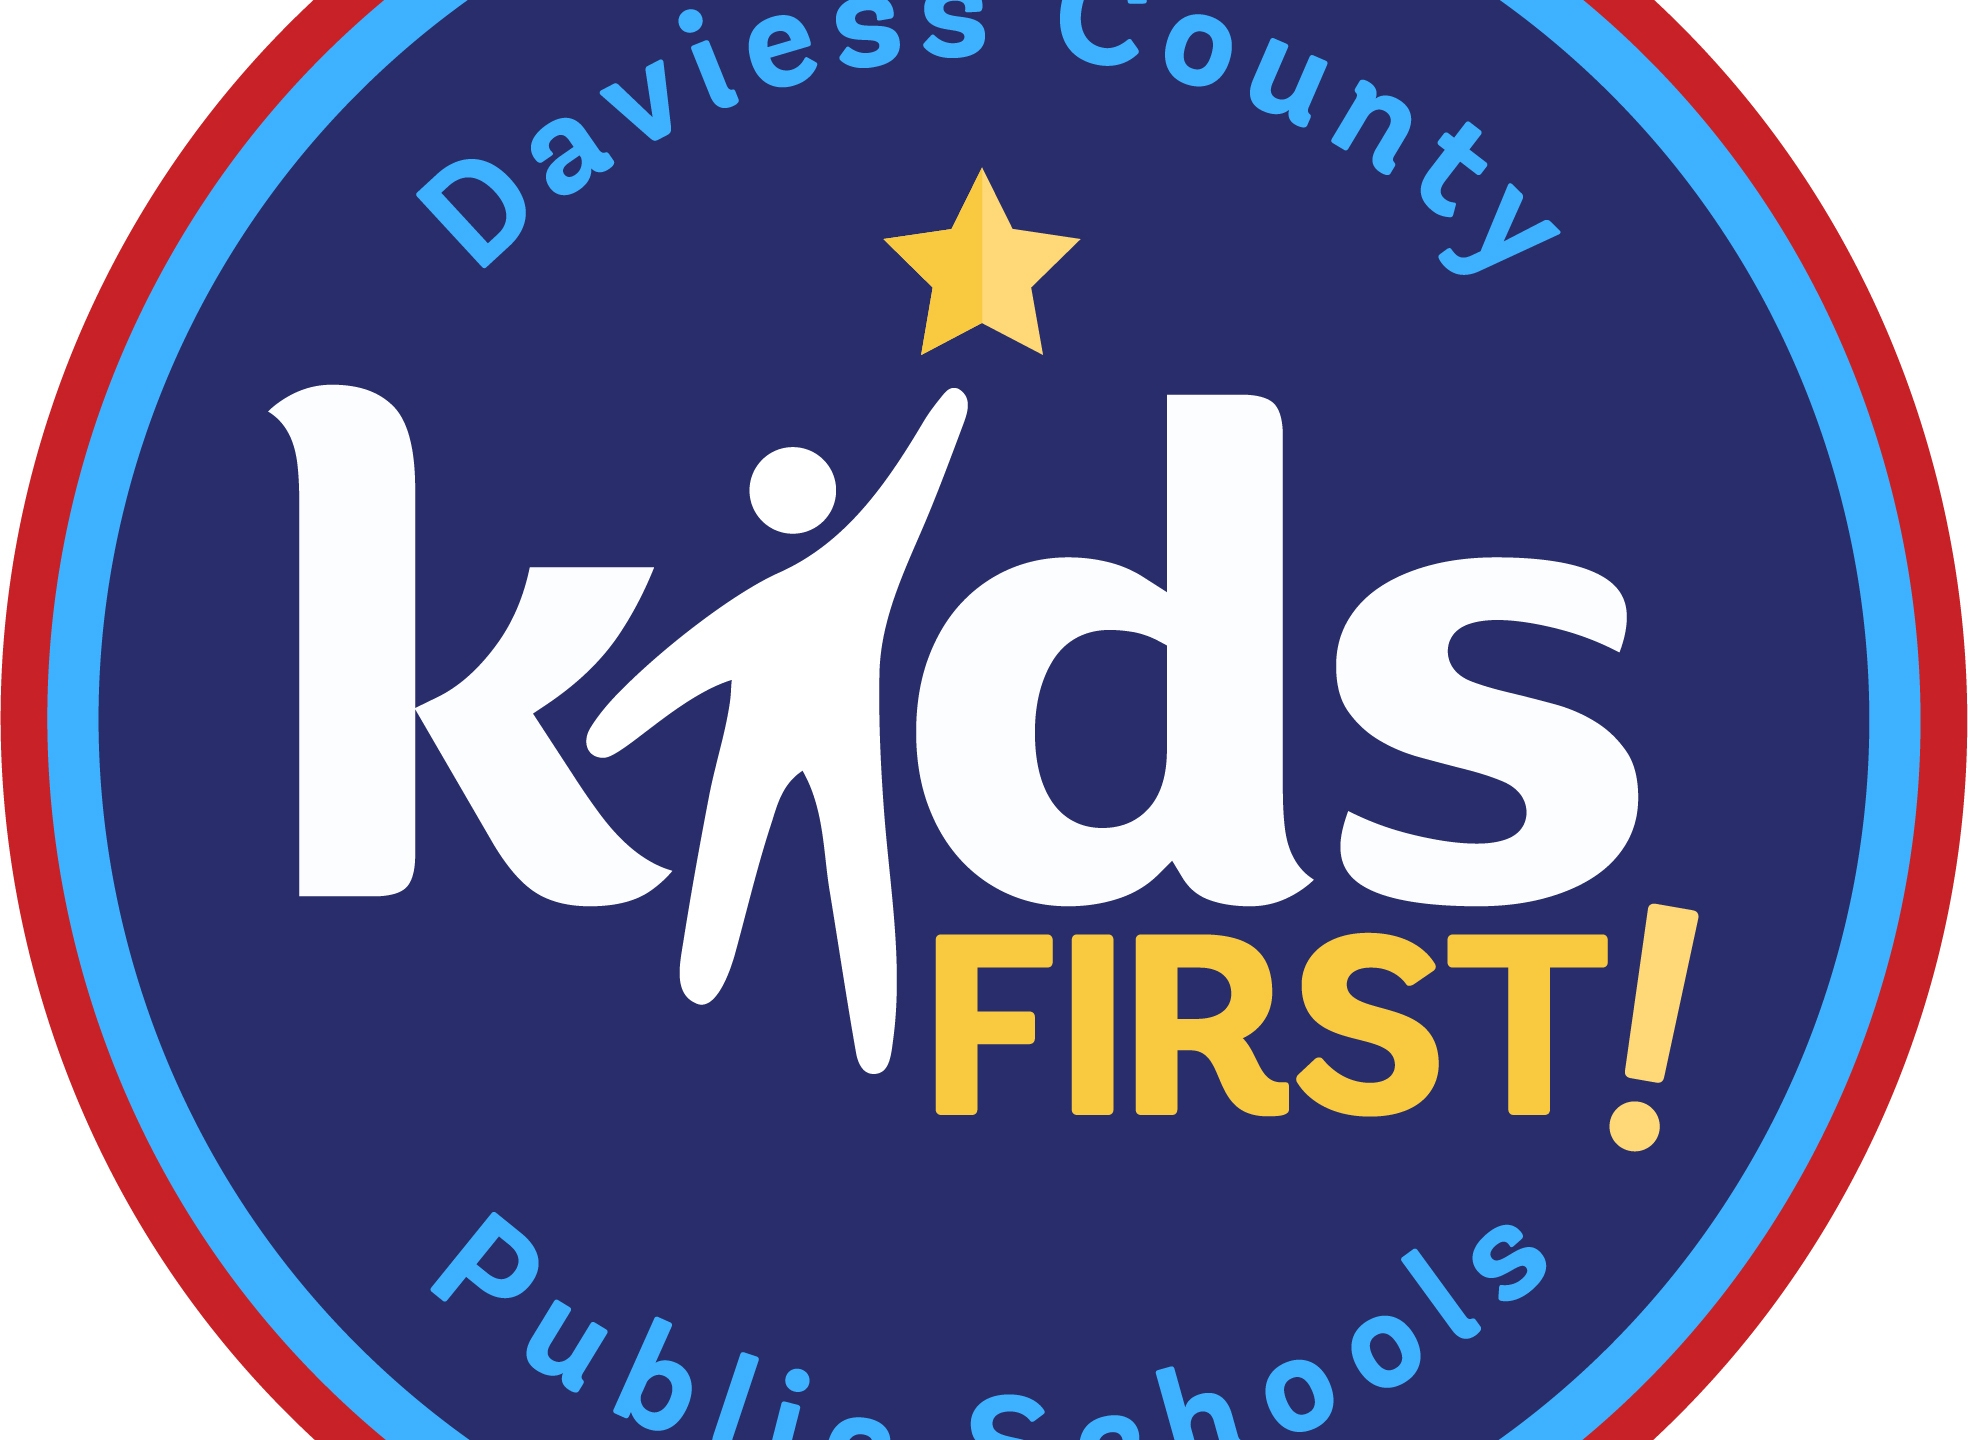 Daviess County Public Schools logo Kids First USE THIS LOGO DCPS